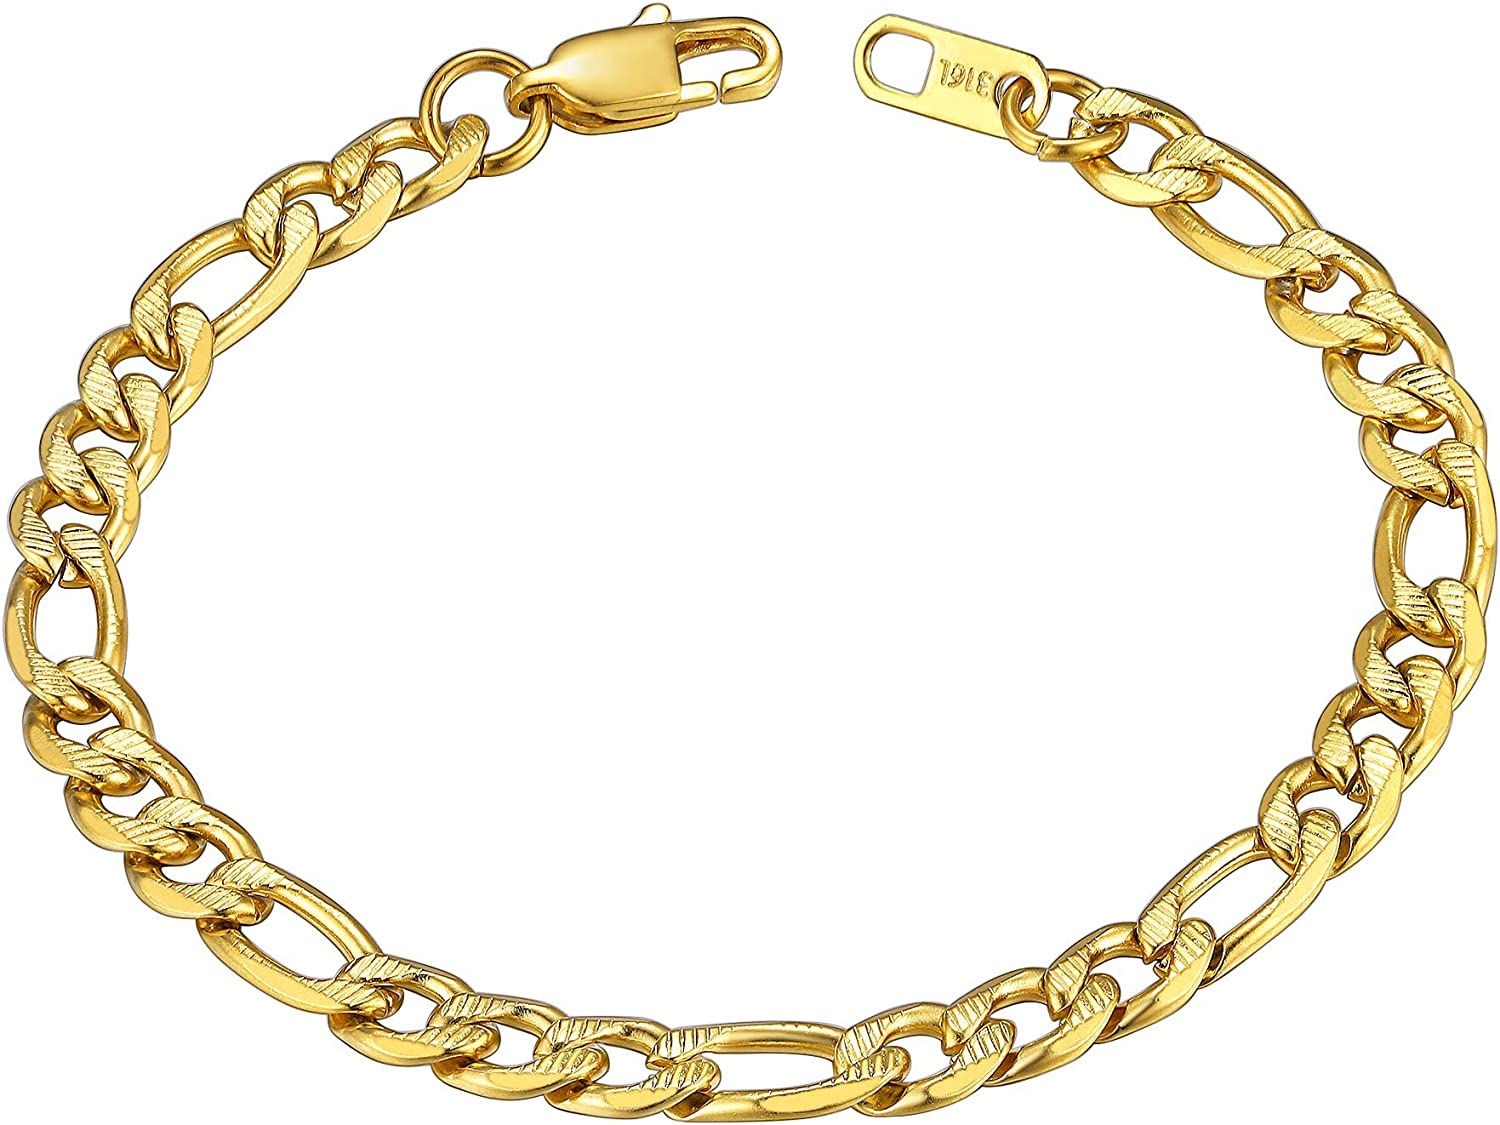 ChainsHouse Figaro 2021new shipping free Link Chain Bracelet Steel 18K Max 44% OFF Stainless Black